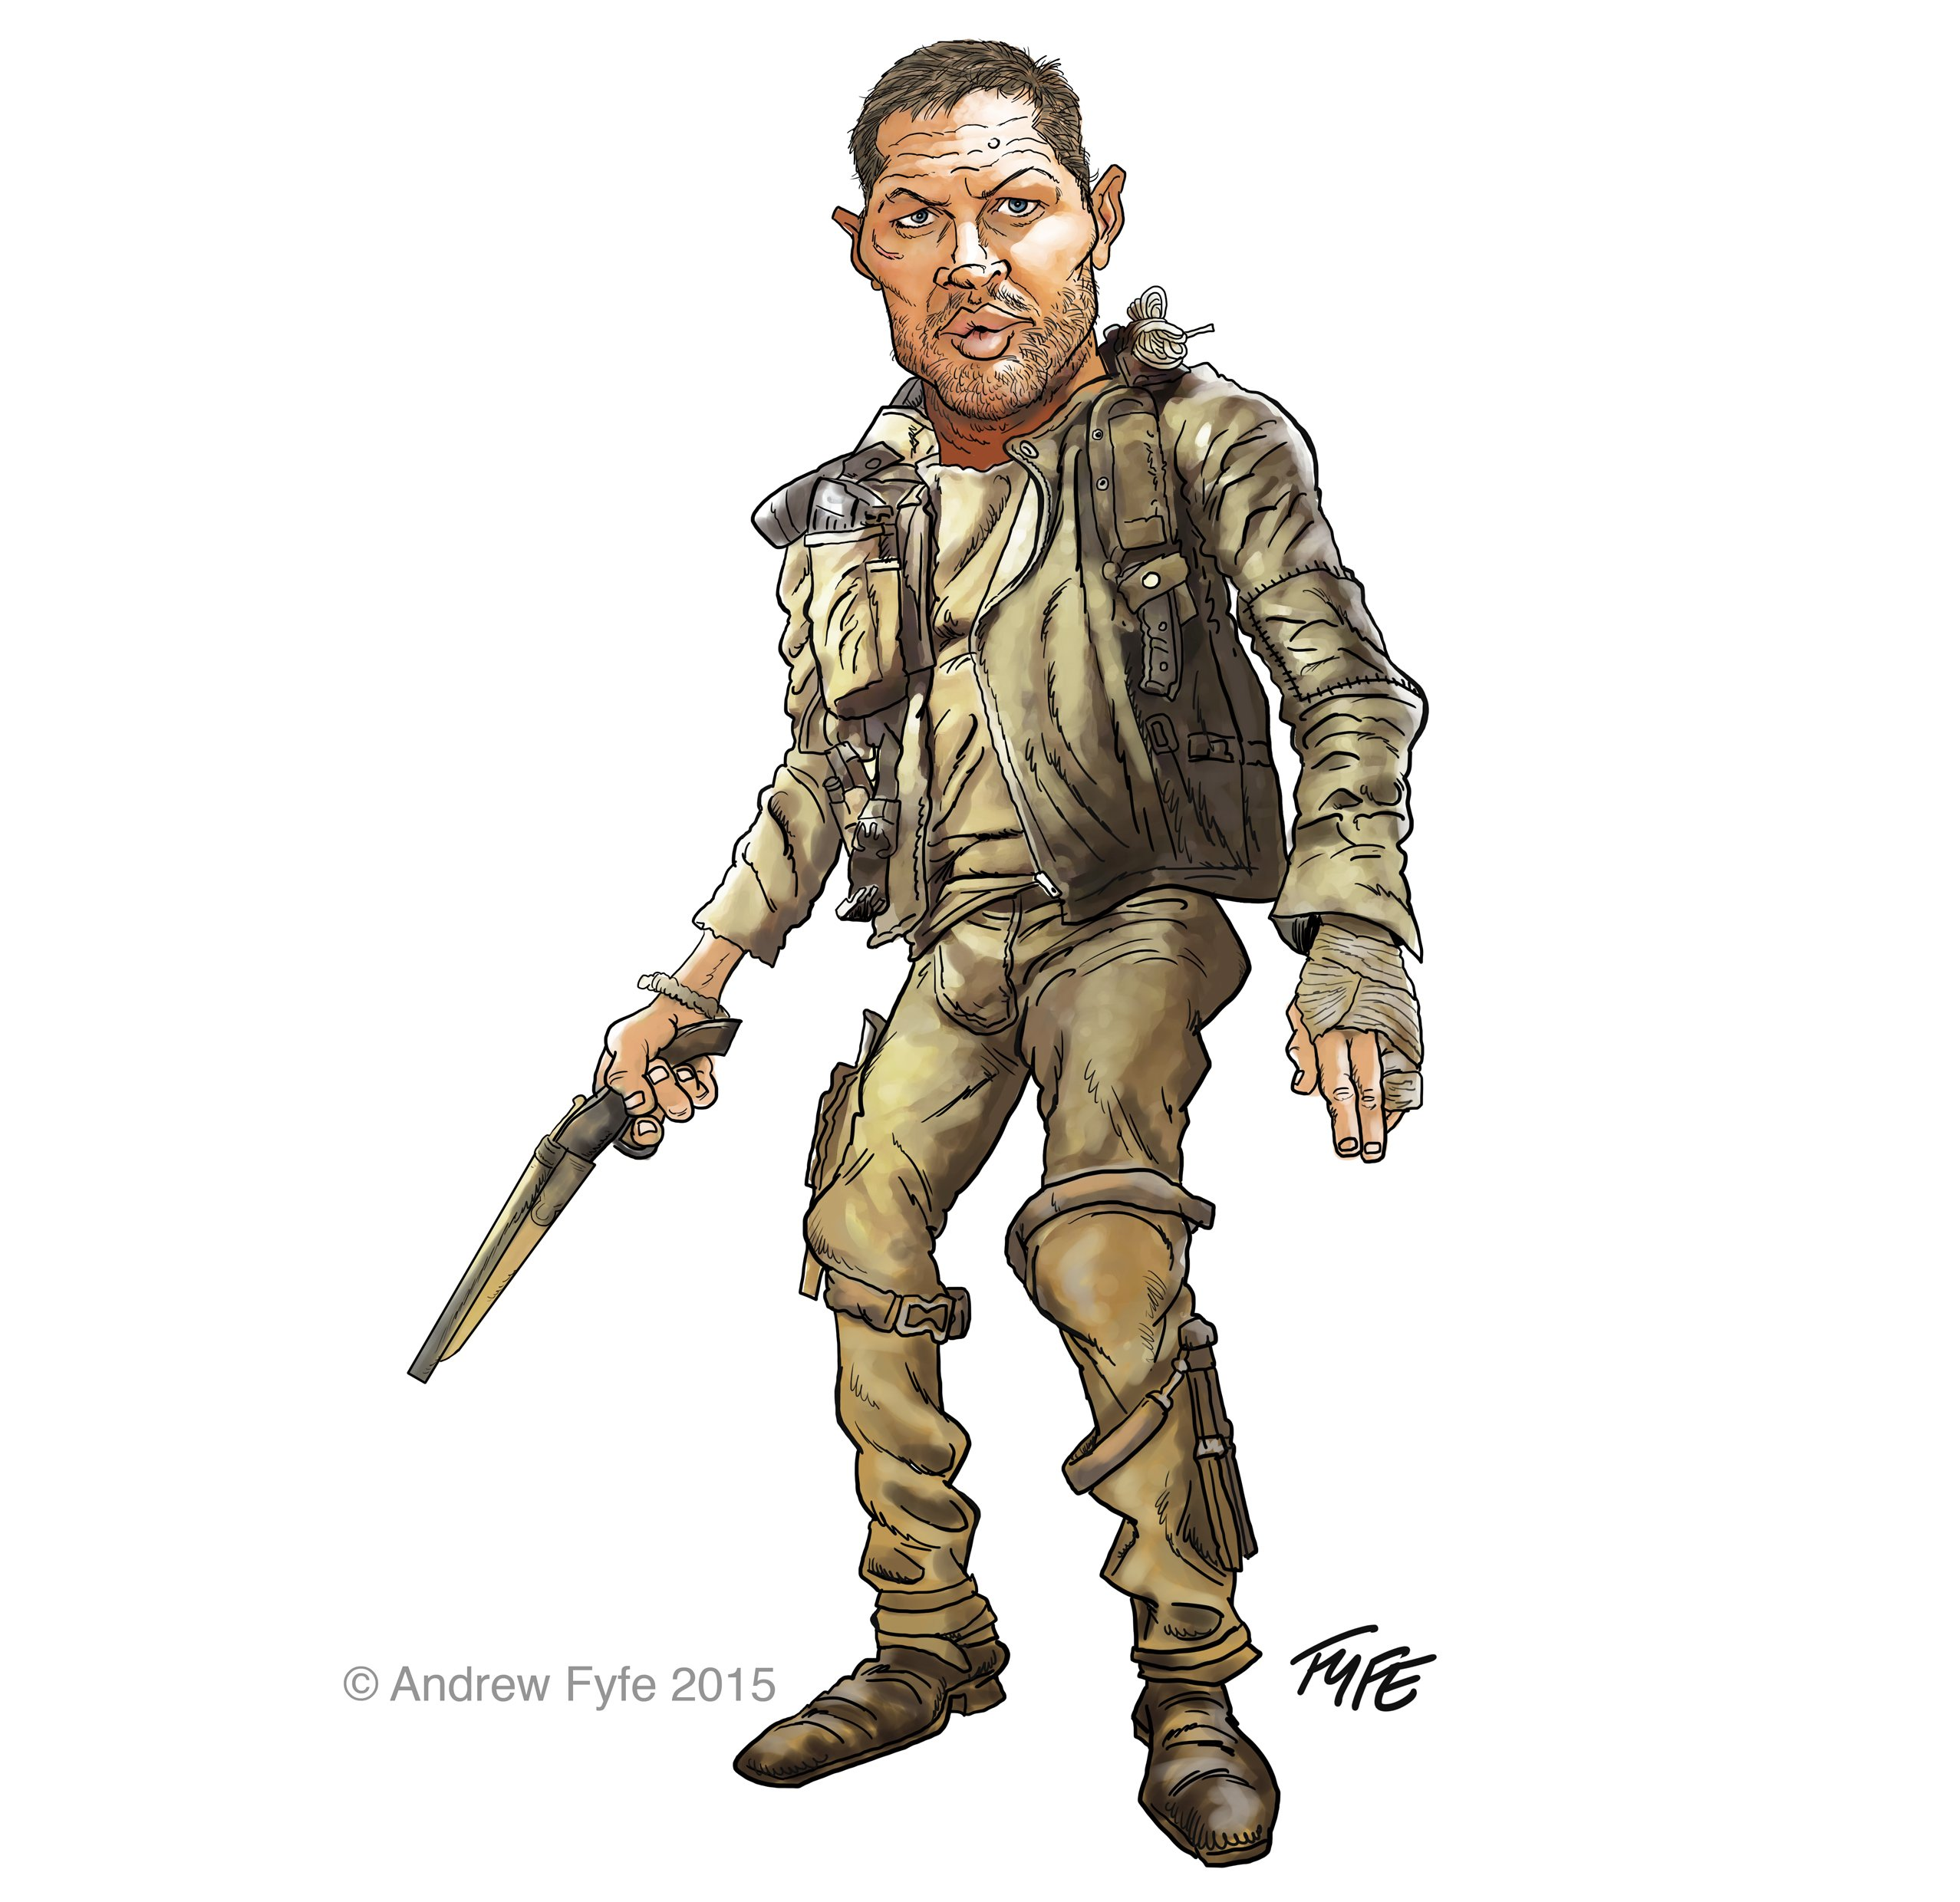 Mad Max, Tom Hardy, Mad Max caricature, Tom Hardy caricature, Andrew Fyfe, Mad Max Fury Road